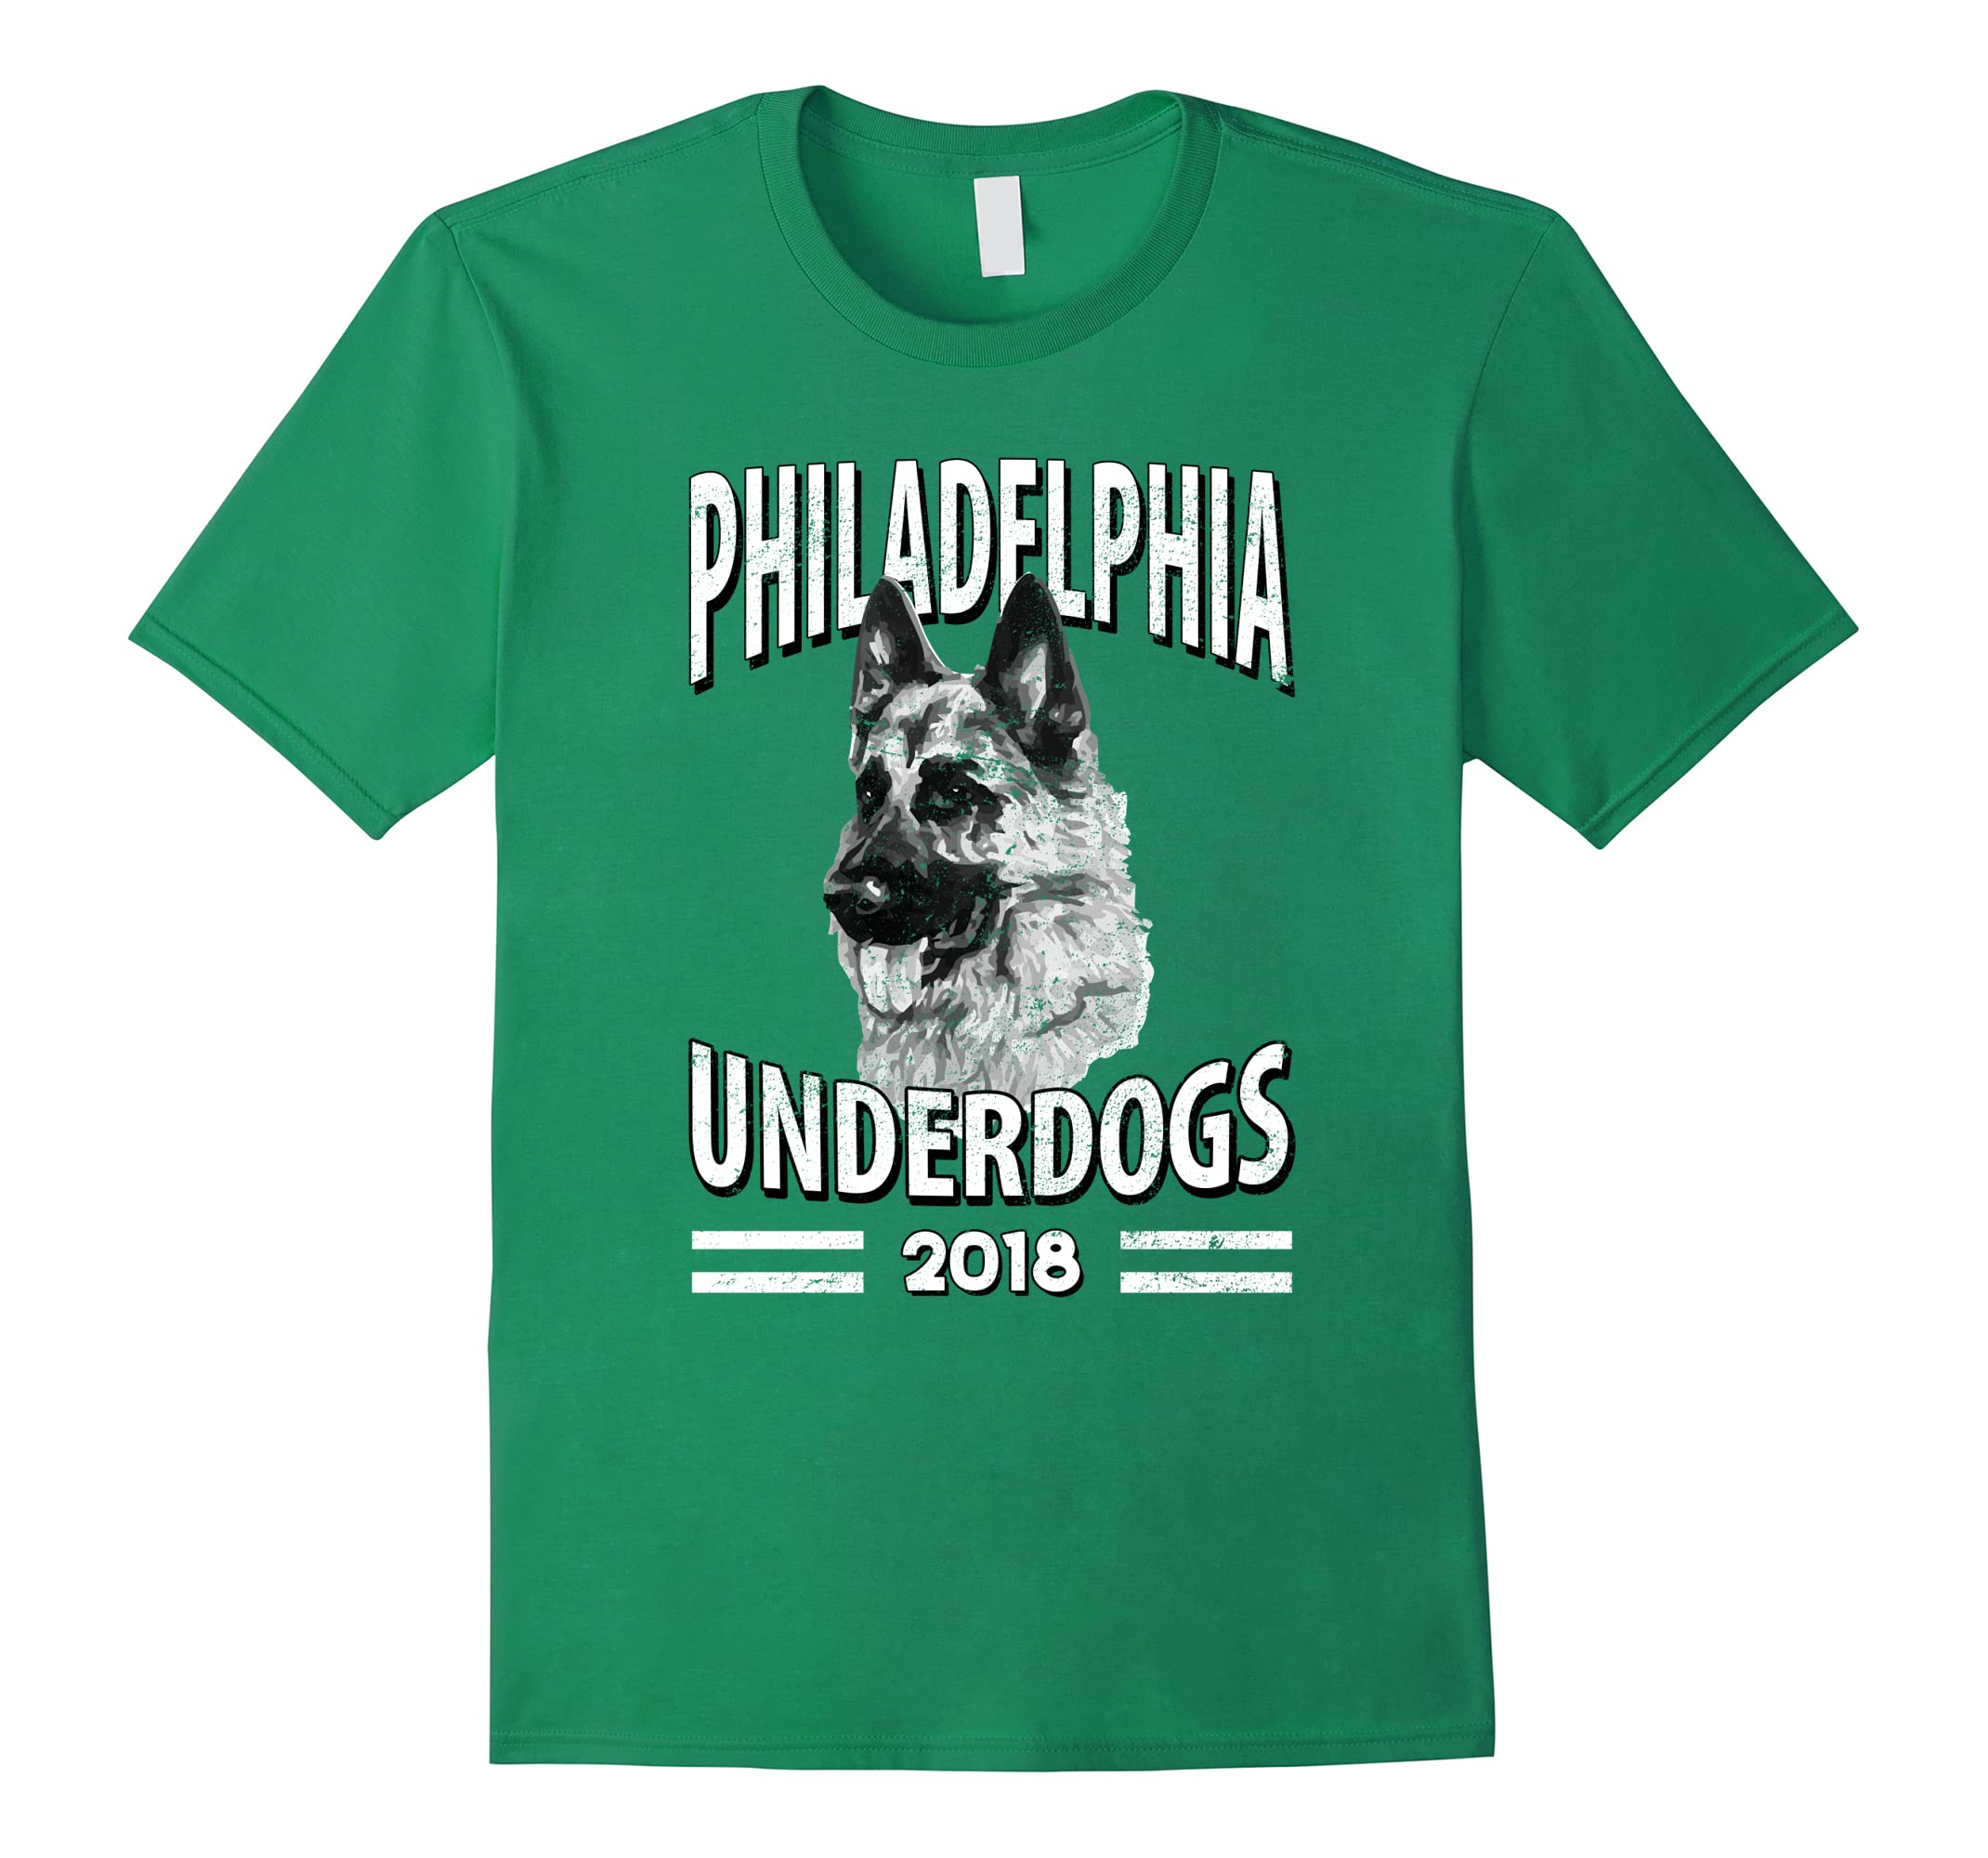 Philadelphia Underdogs 2018 Distressed Look Funny T-Shirt-ah my shirt one gift